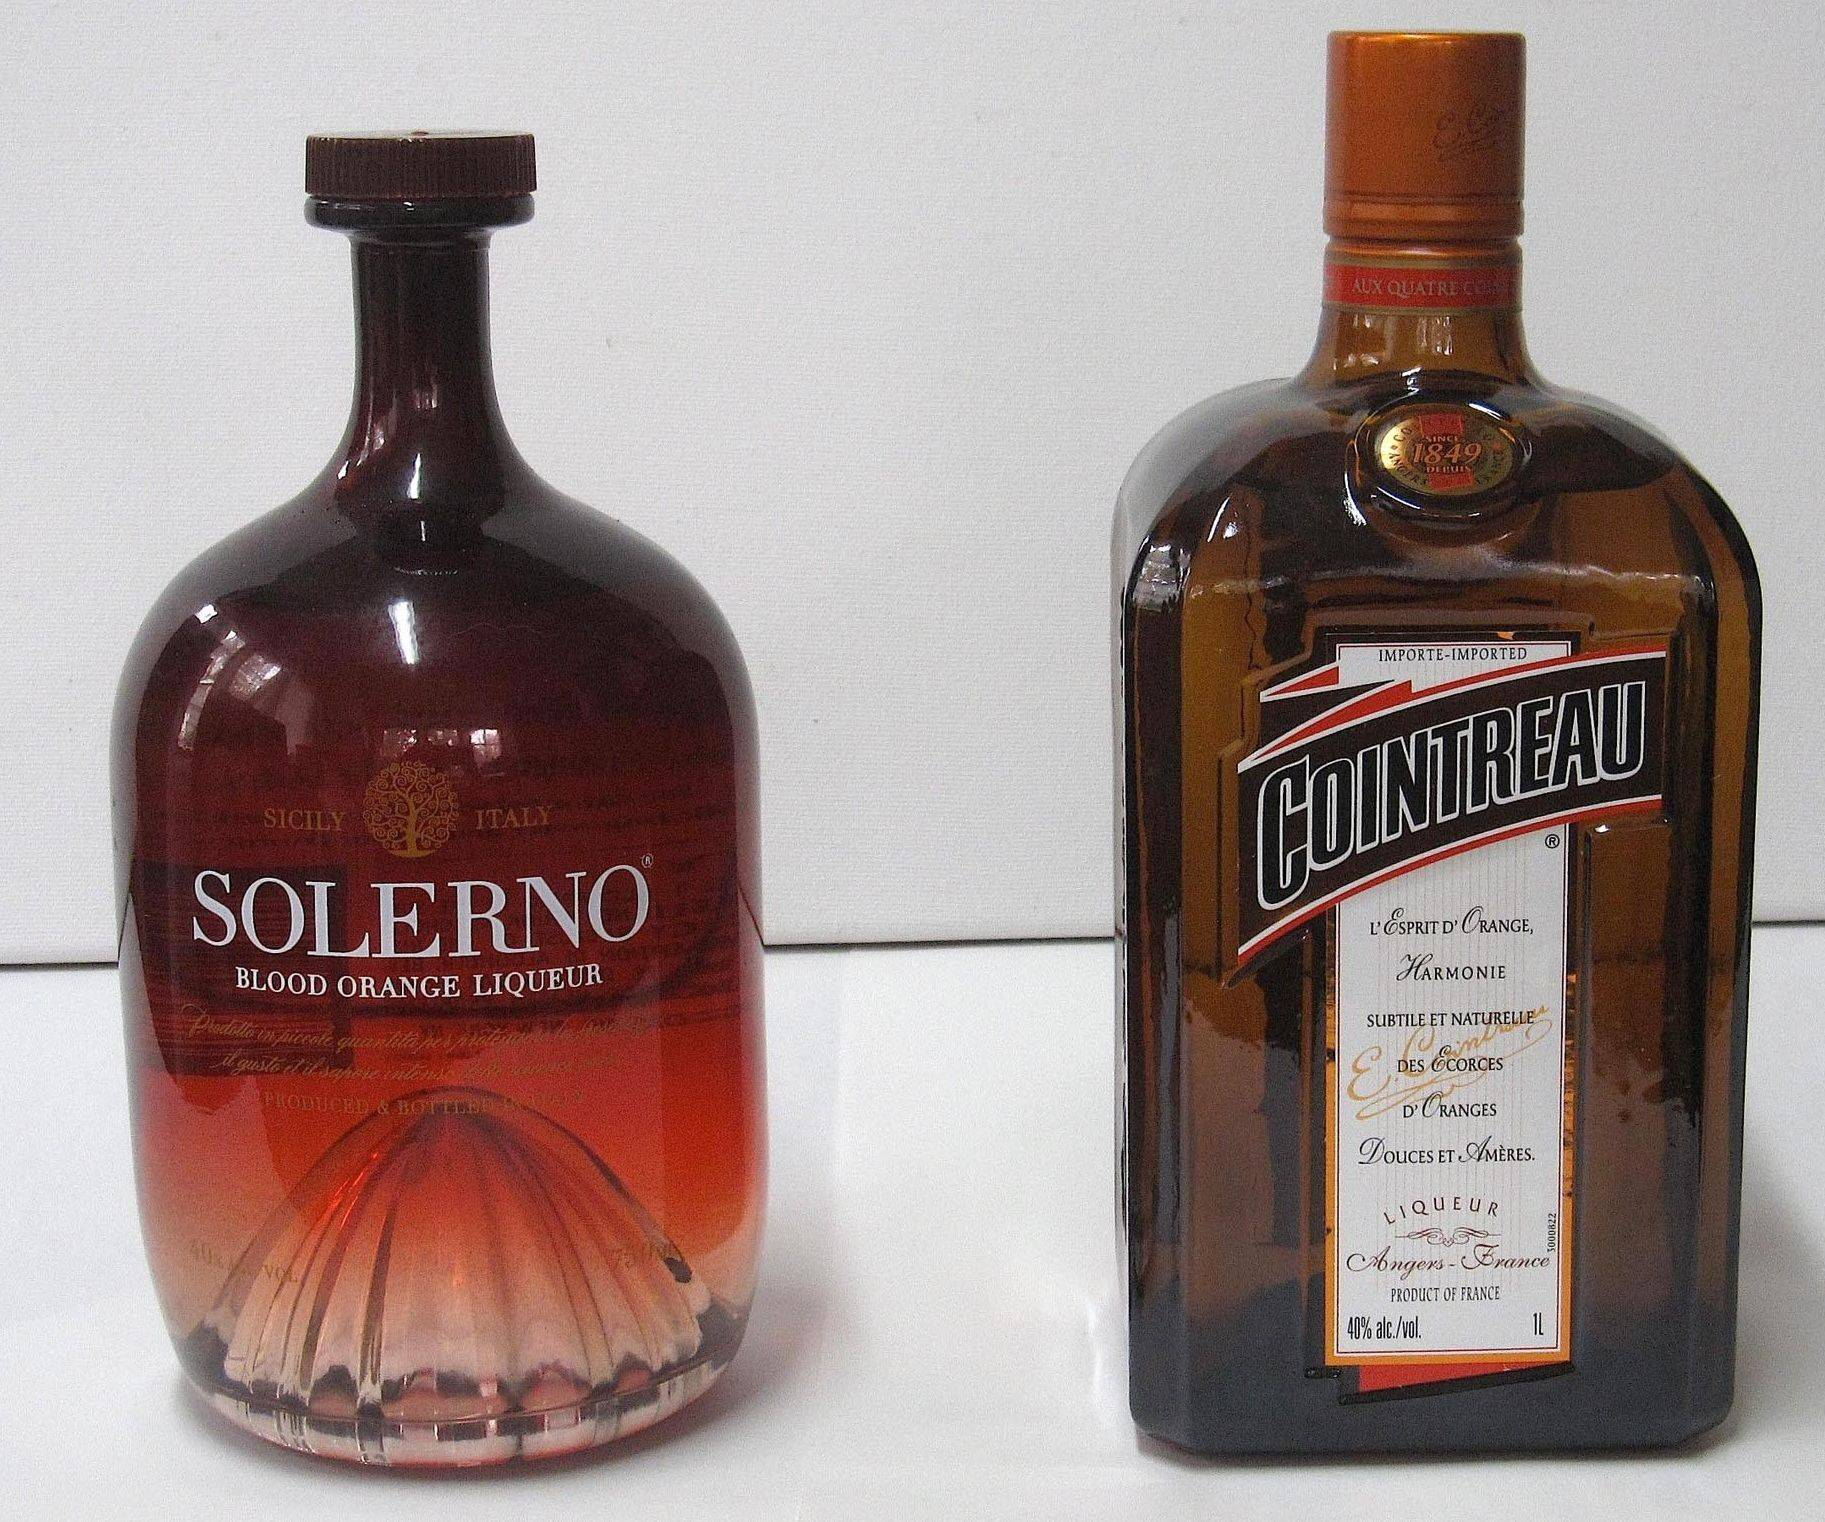 Italian Solerno is made with blood oranges. French Cointreau, long a high standard for orange liqueurs, is distilled using dried bitter orange peels.